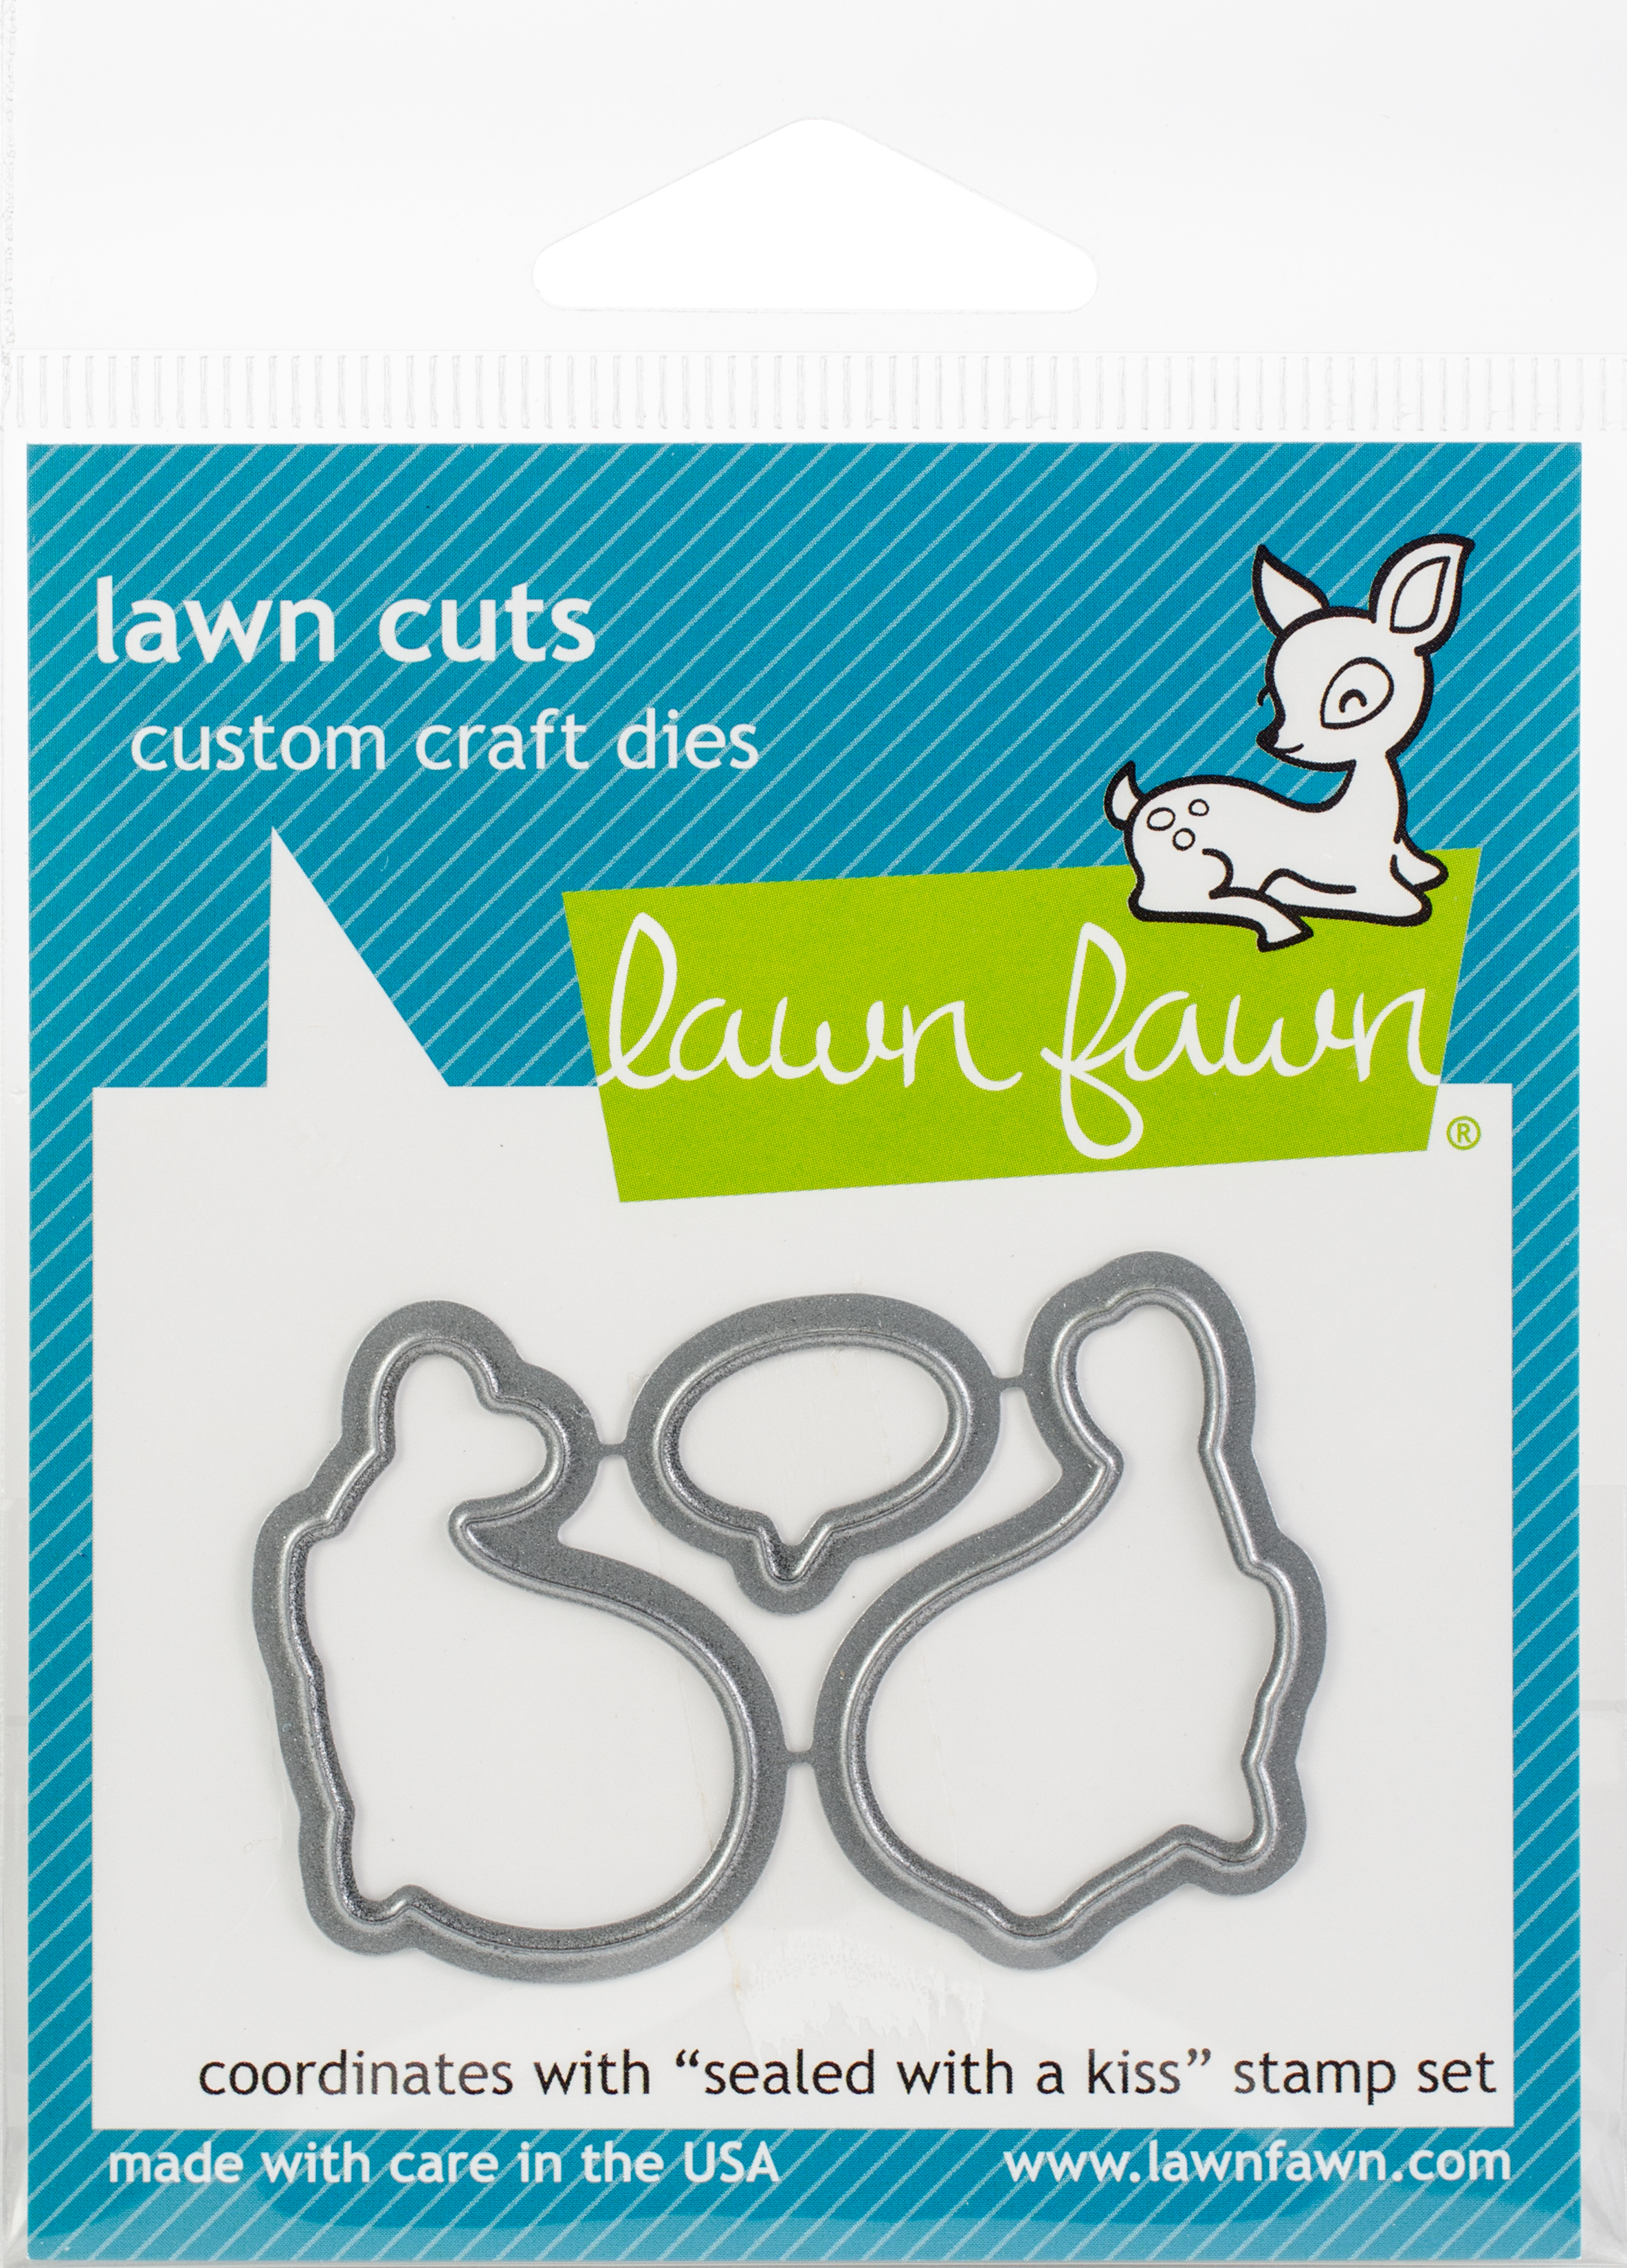 Lawn Cuts Custom Craft Die-Sealed With A Kiss